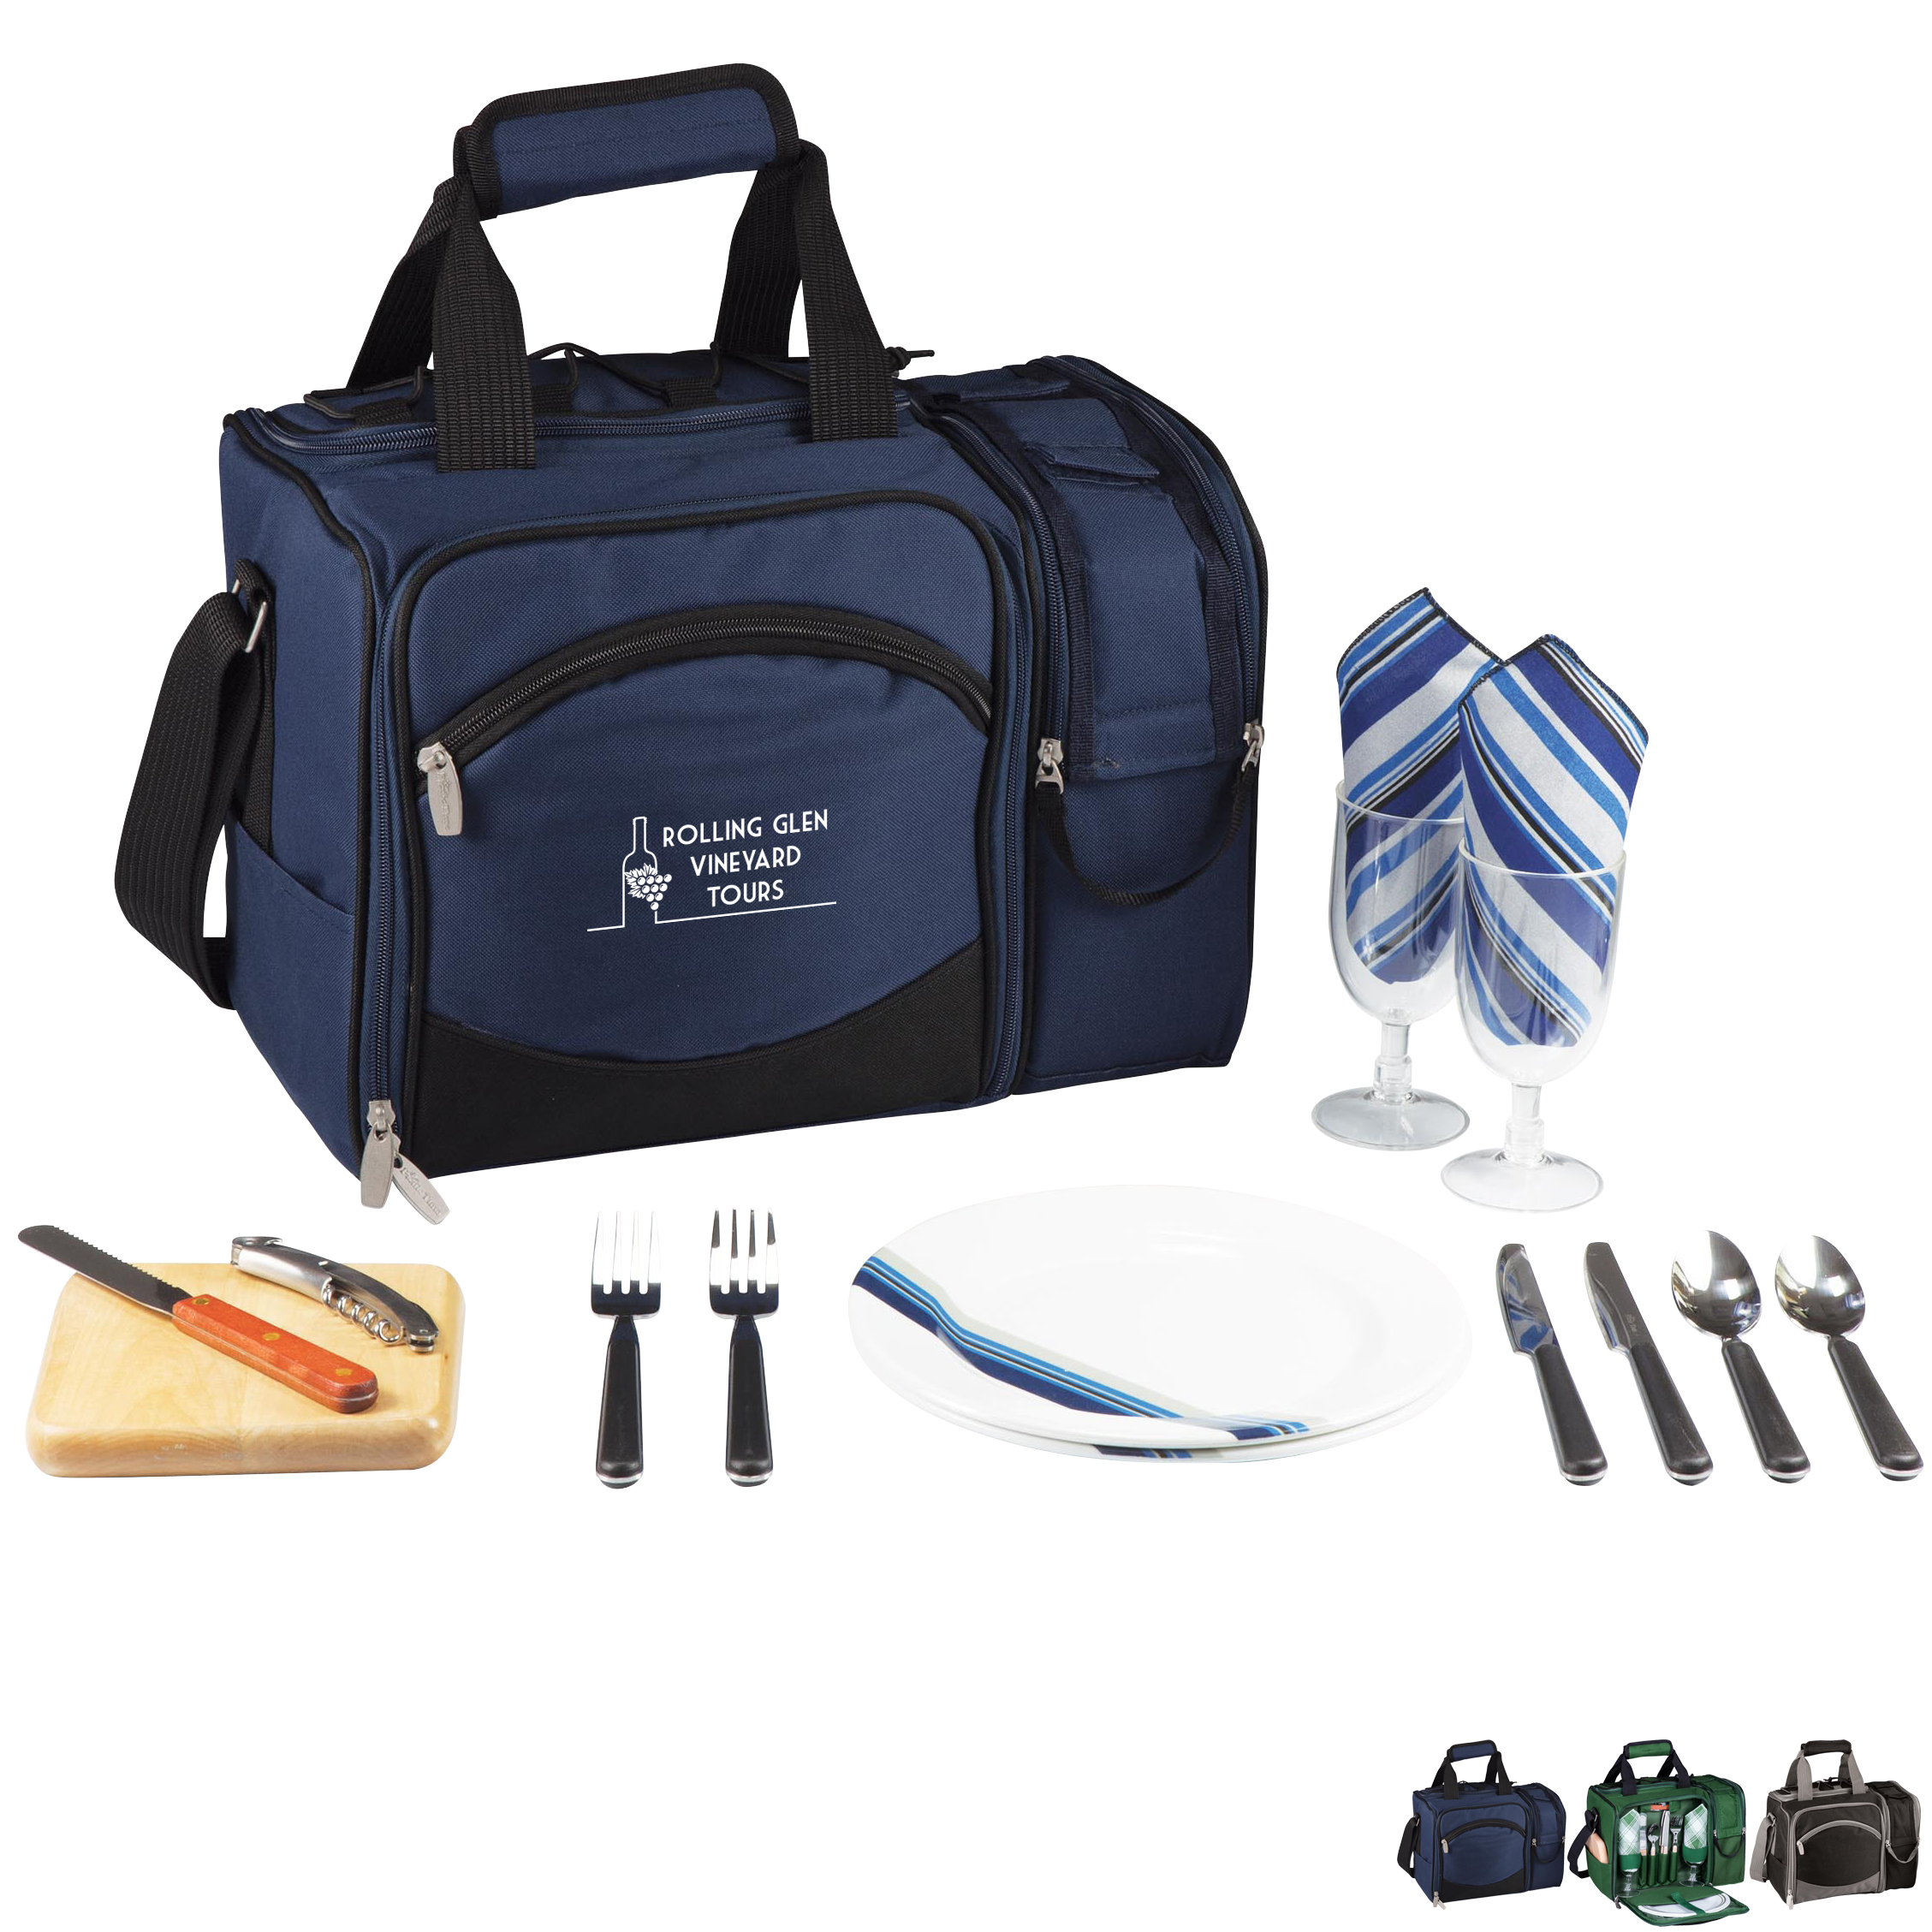 Malibu Picnic Cooler Set - Solid Colors